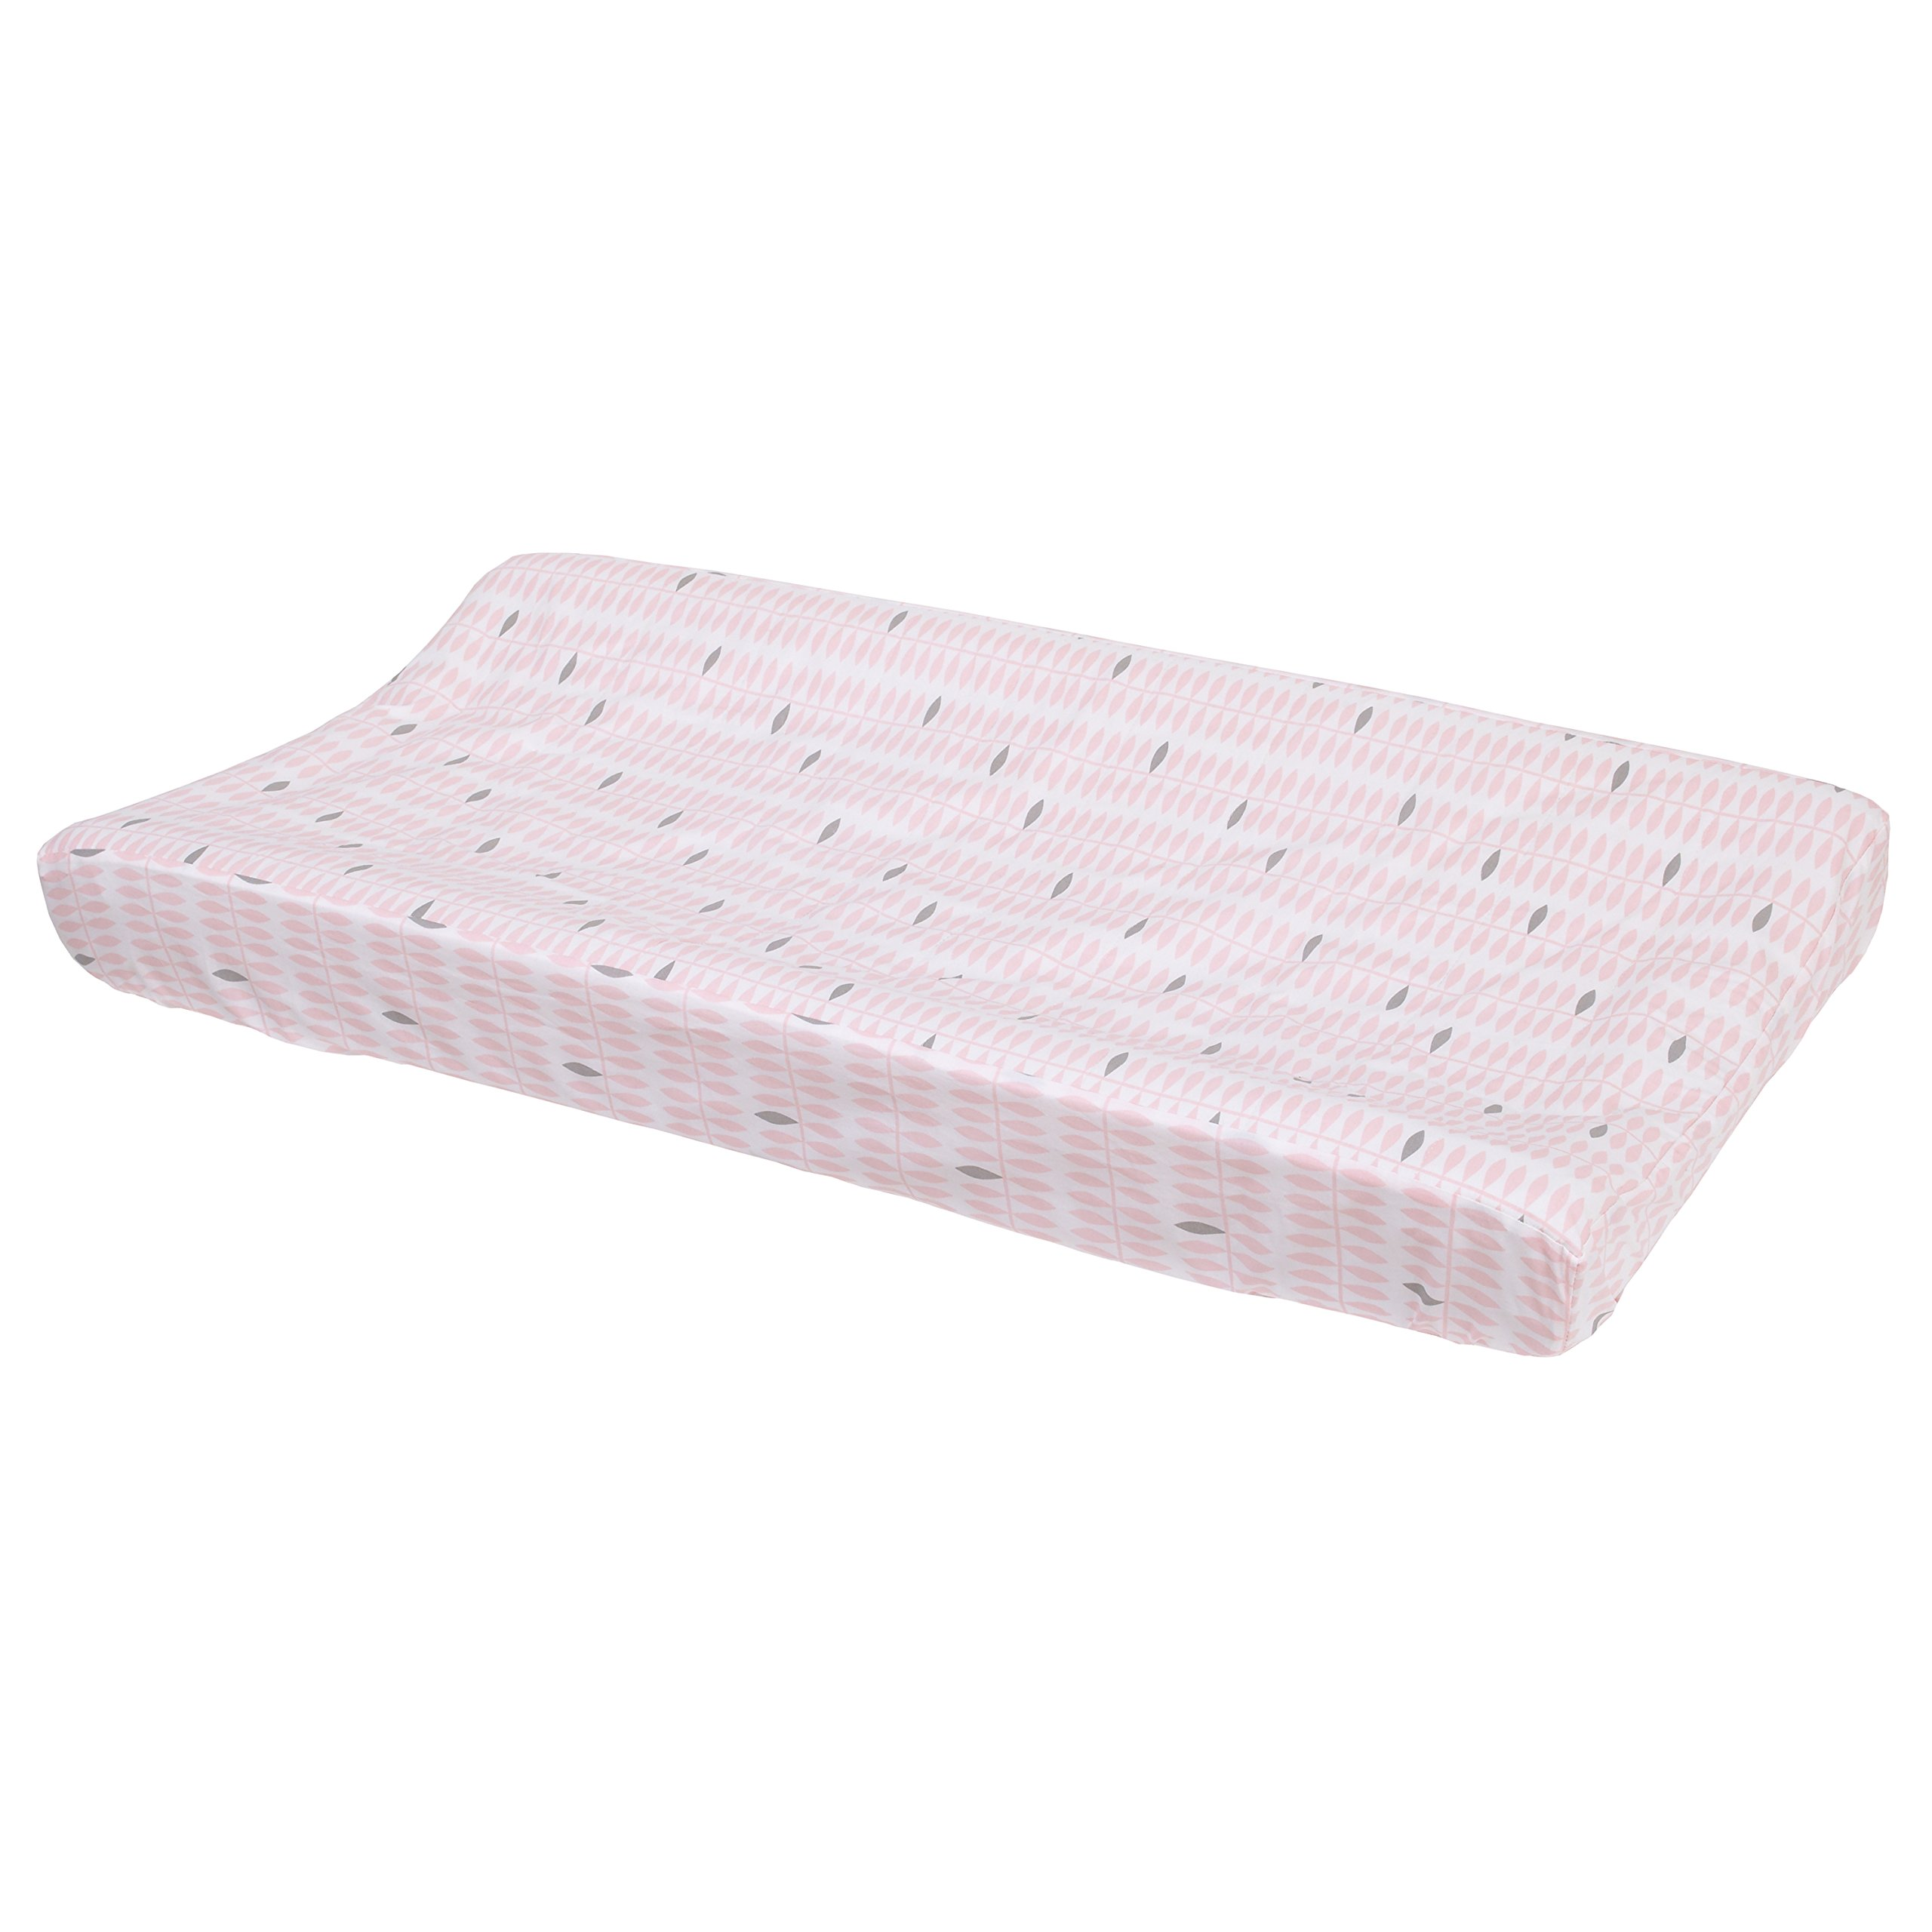 Petunia Pickle Bottom Dreaming in Dax Quilted Changing Pad Cover, Pink/Gray/White